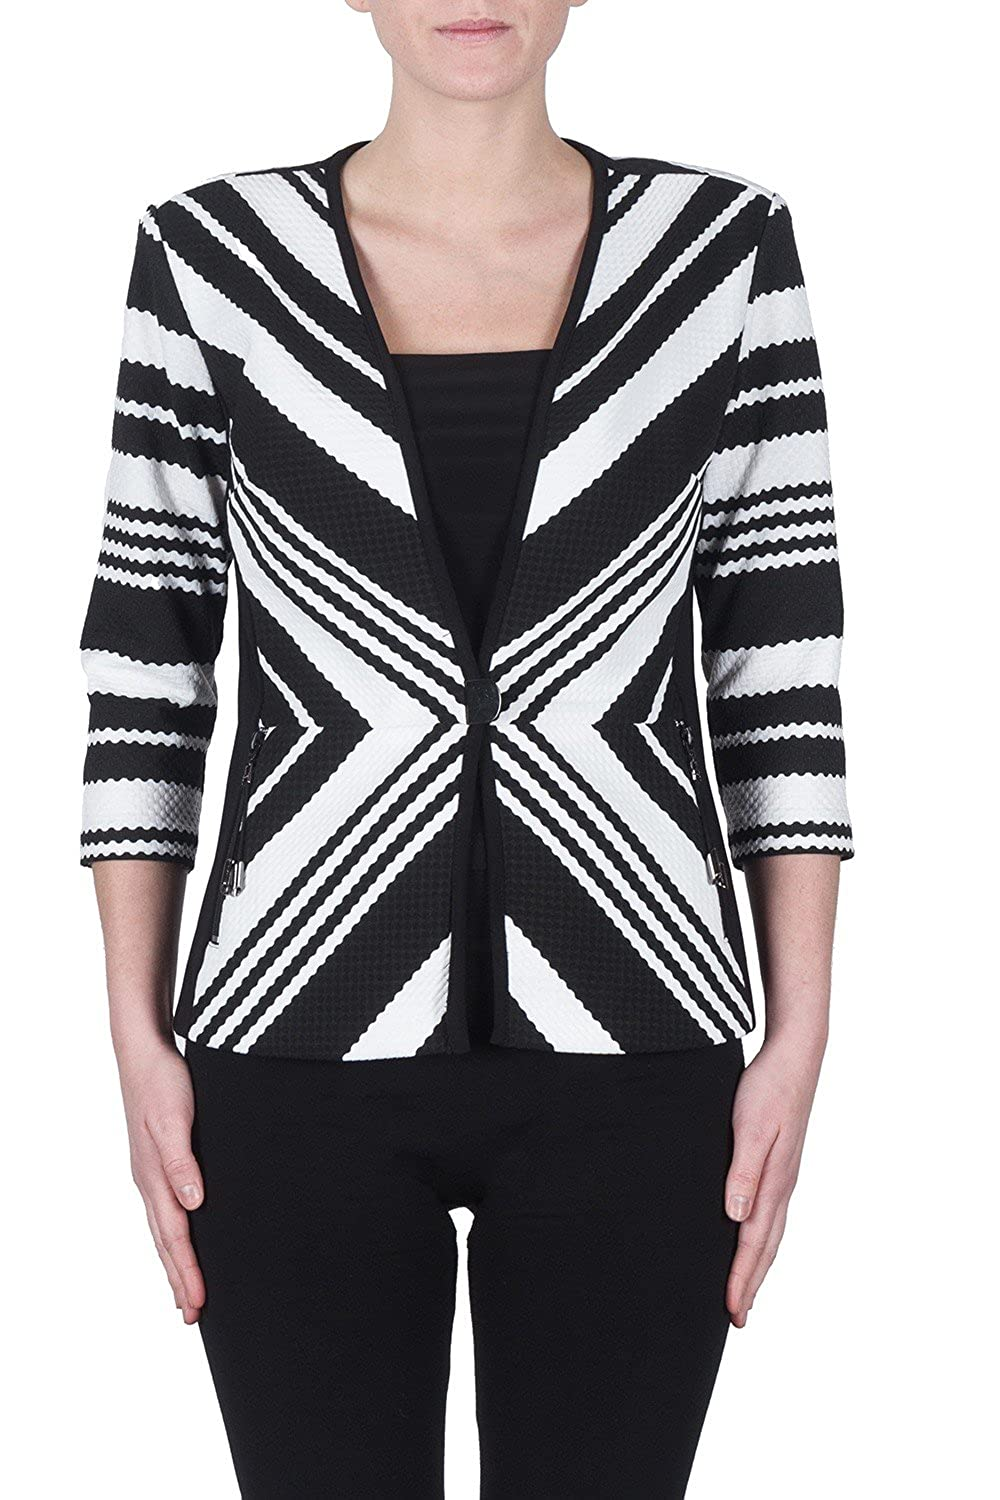 Joseph Ribkoff Black /& White Striped Textured Coverup Jacket Style 172852